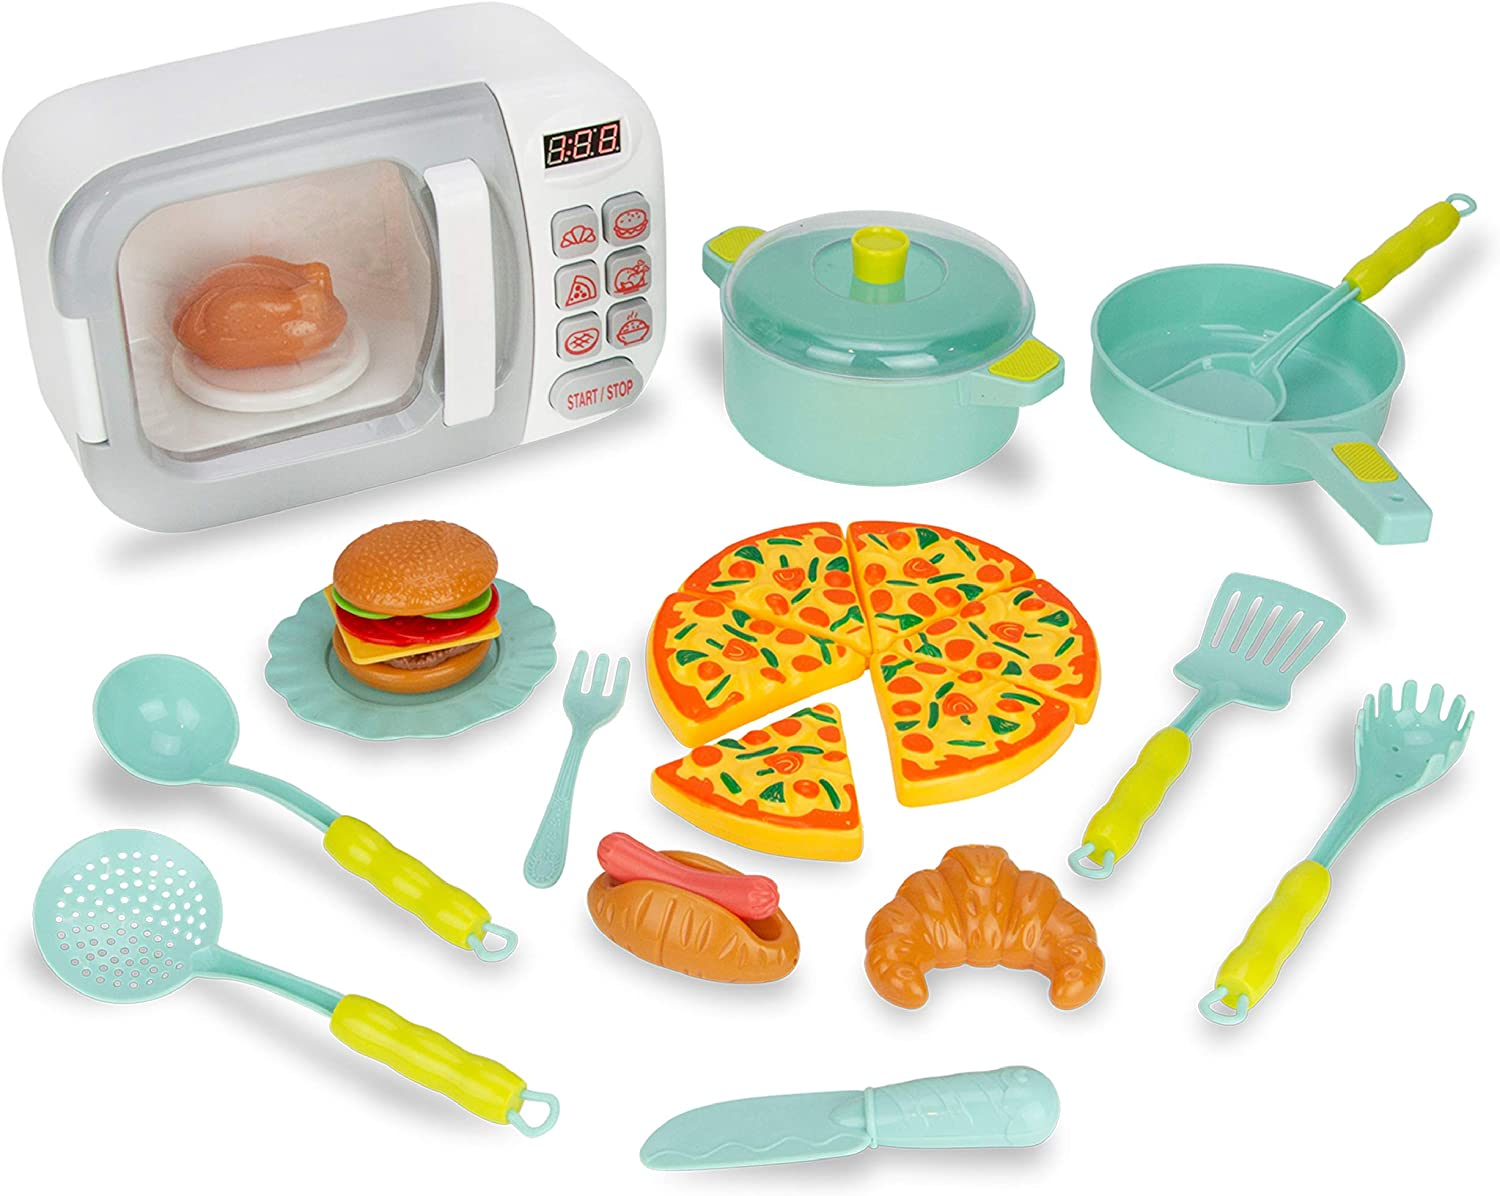 Boley Microwave Playset - Silver Red